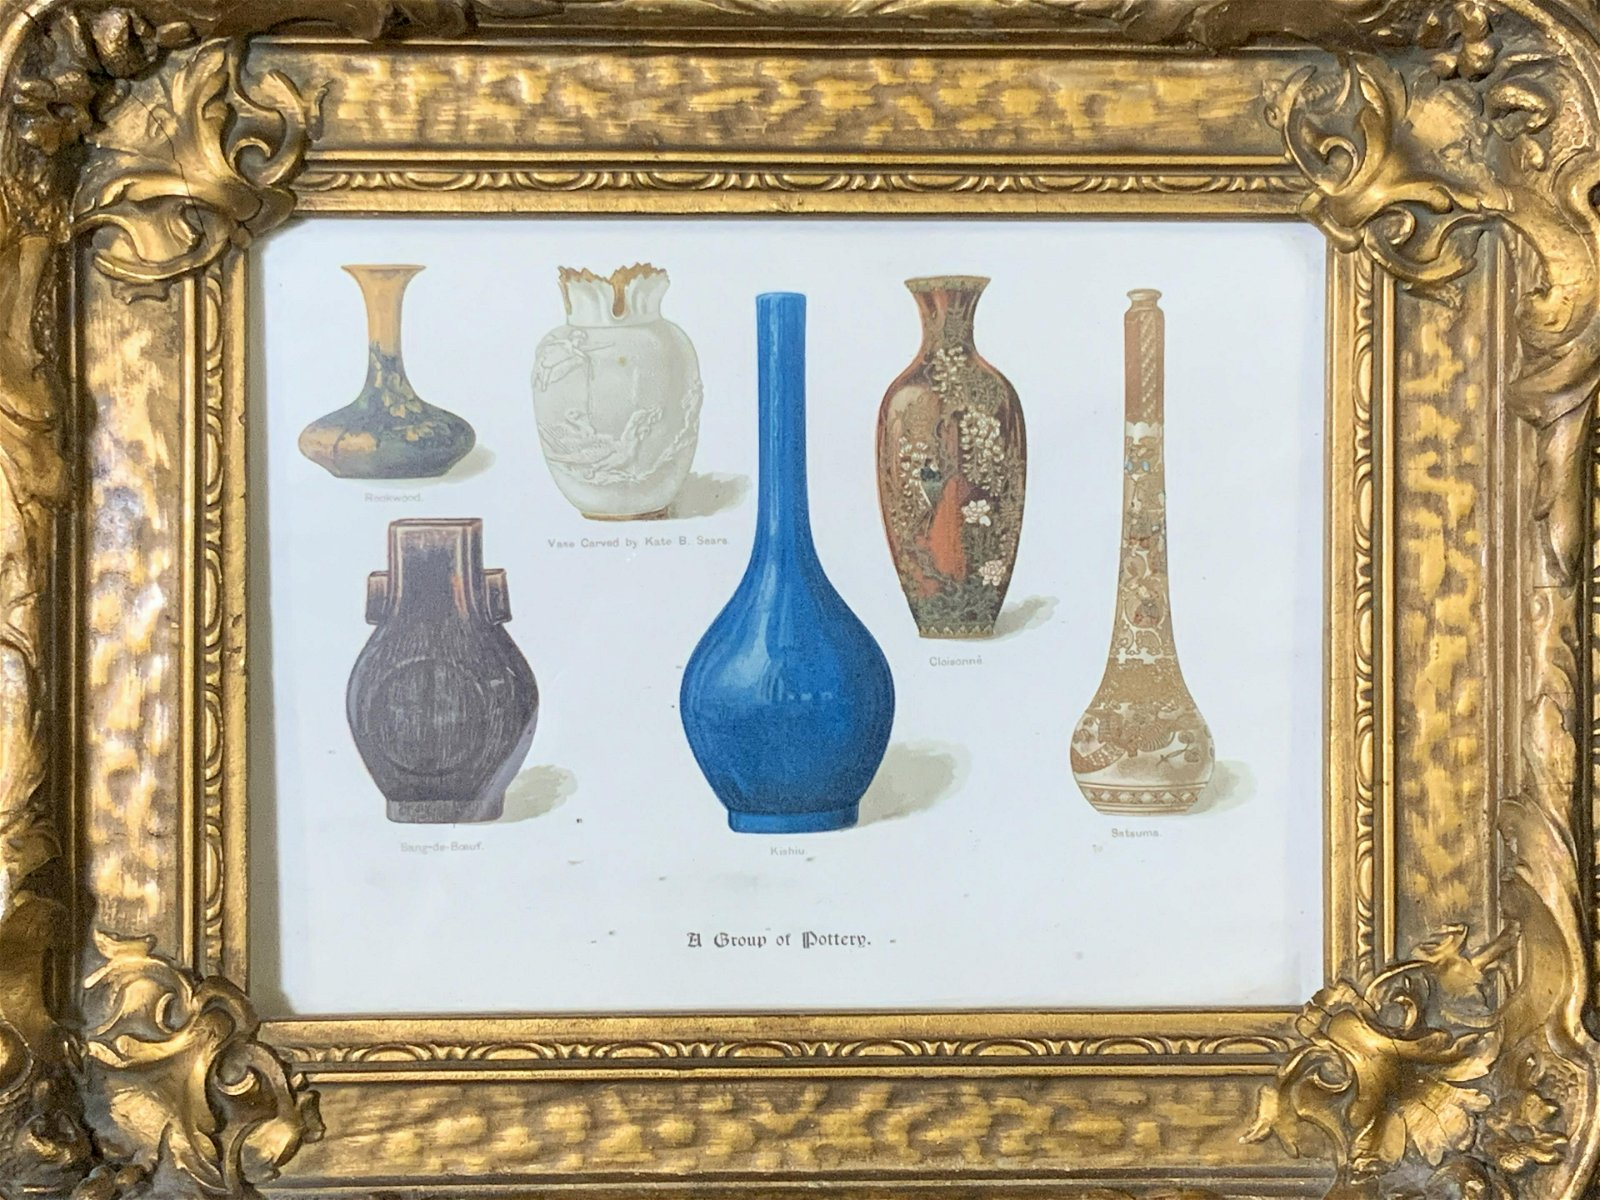 Antique Lithograph of Pottery, Artwork